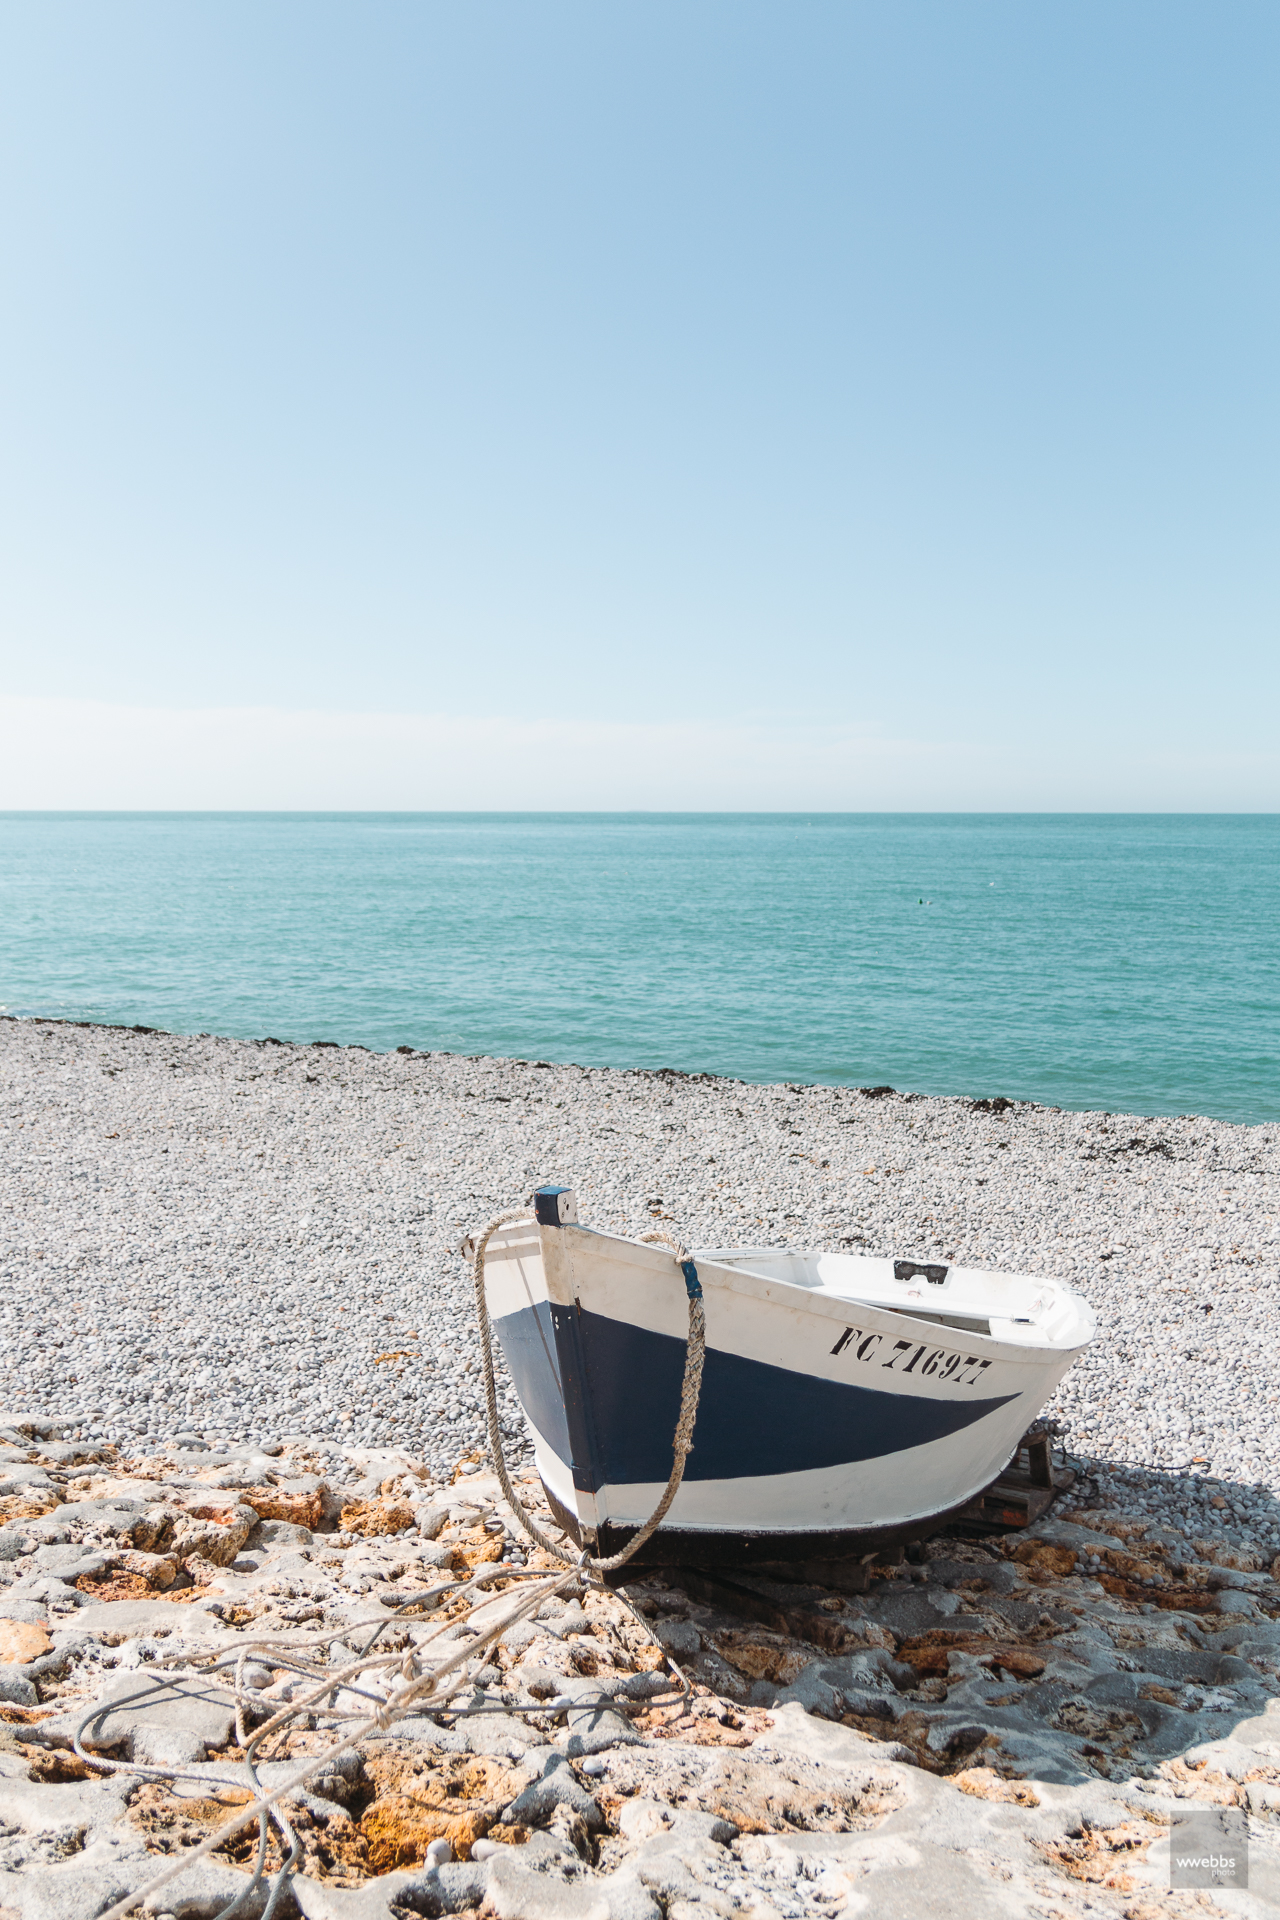 Boat at the beach